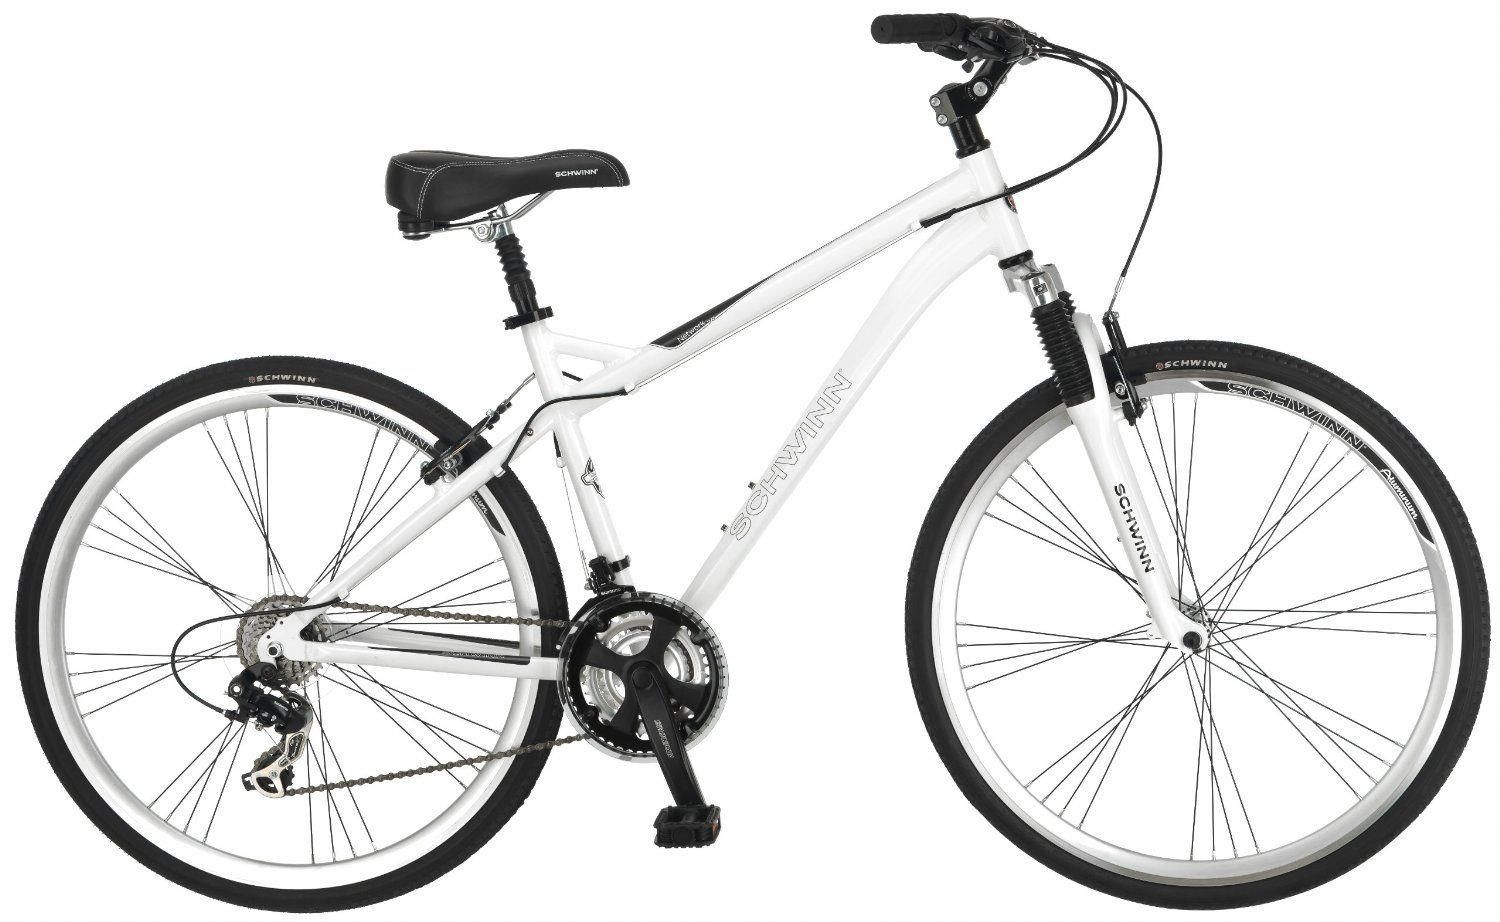 *Schwinn Men's Network 3.0 700C Hybrid Bicycle* The